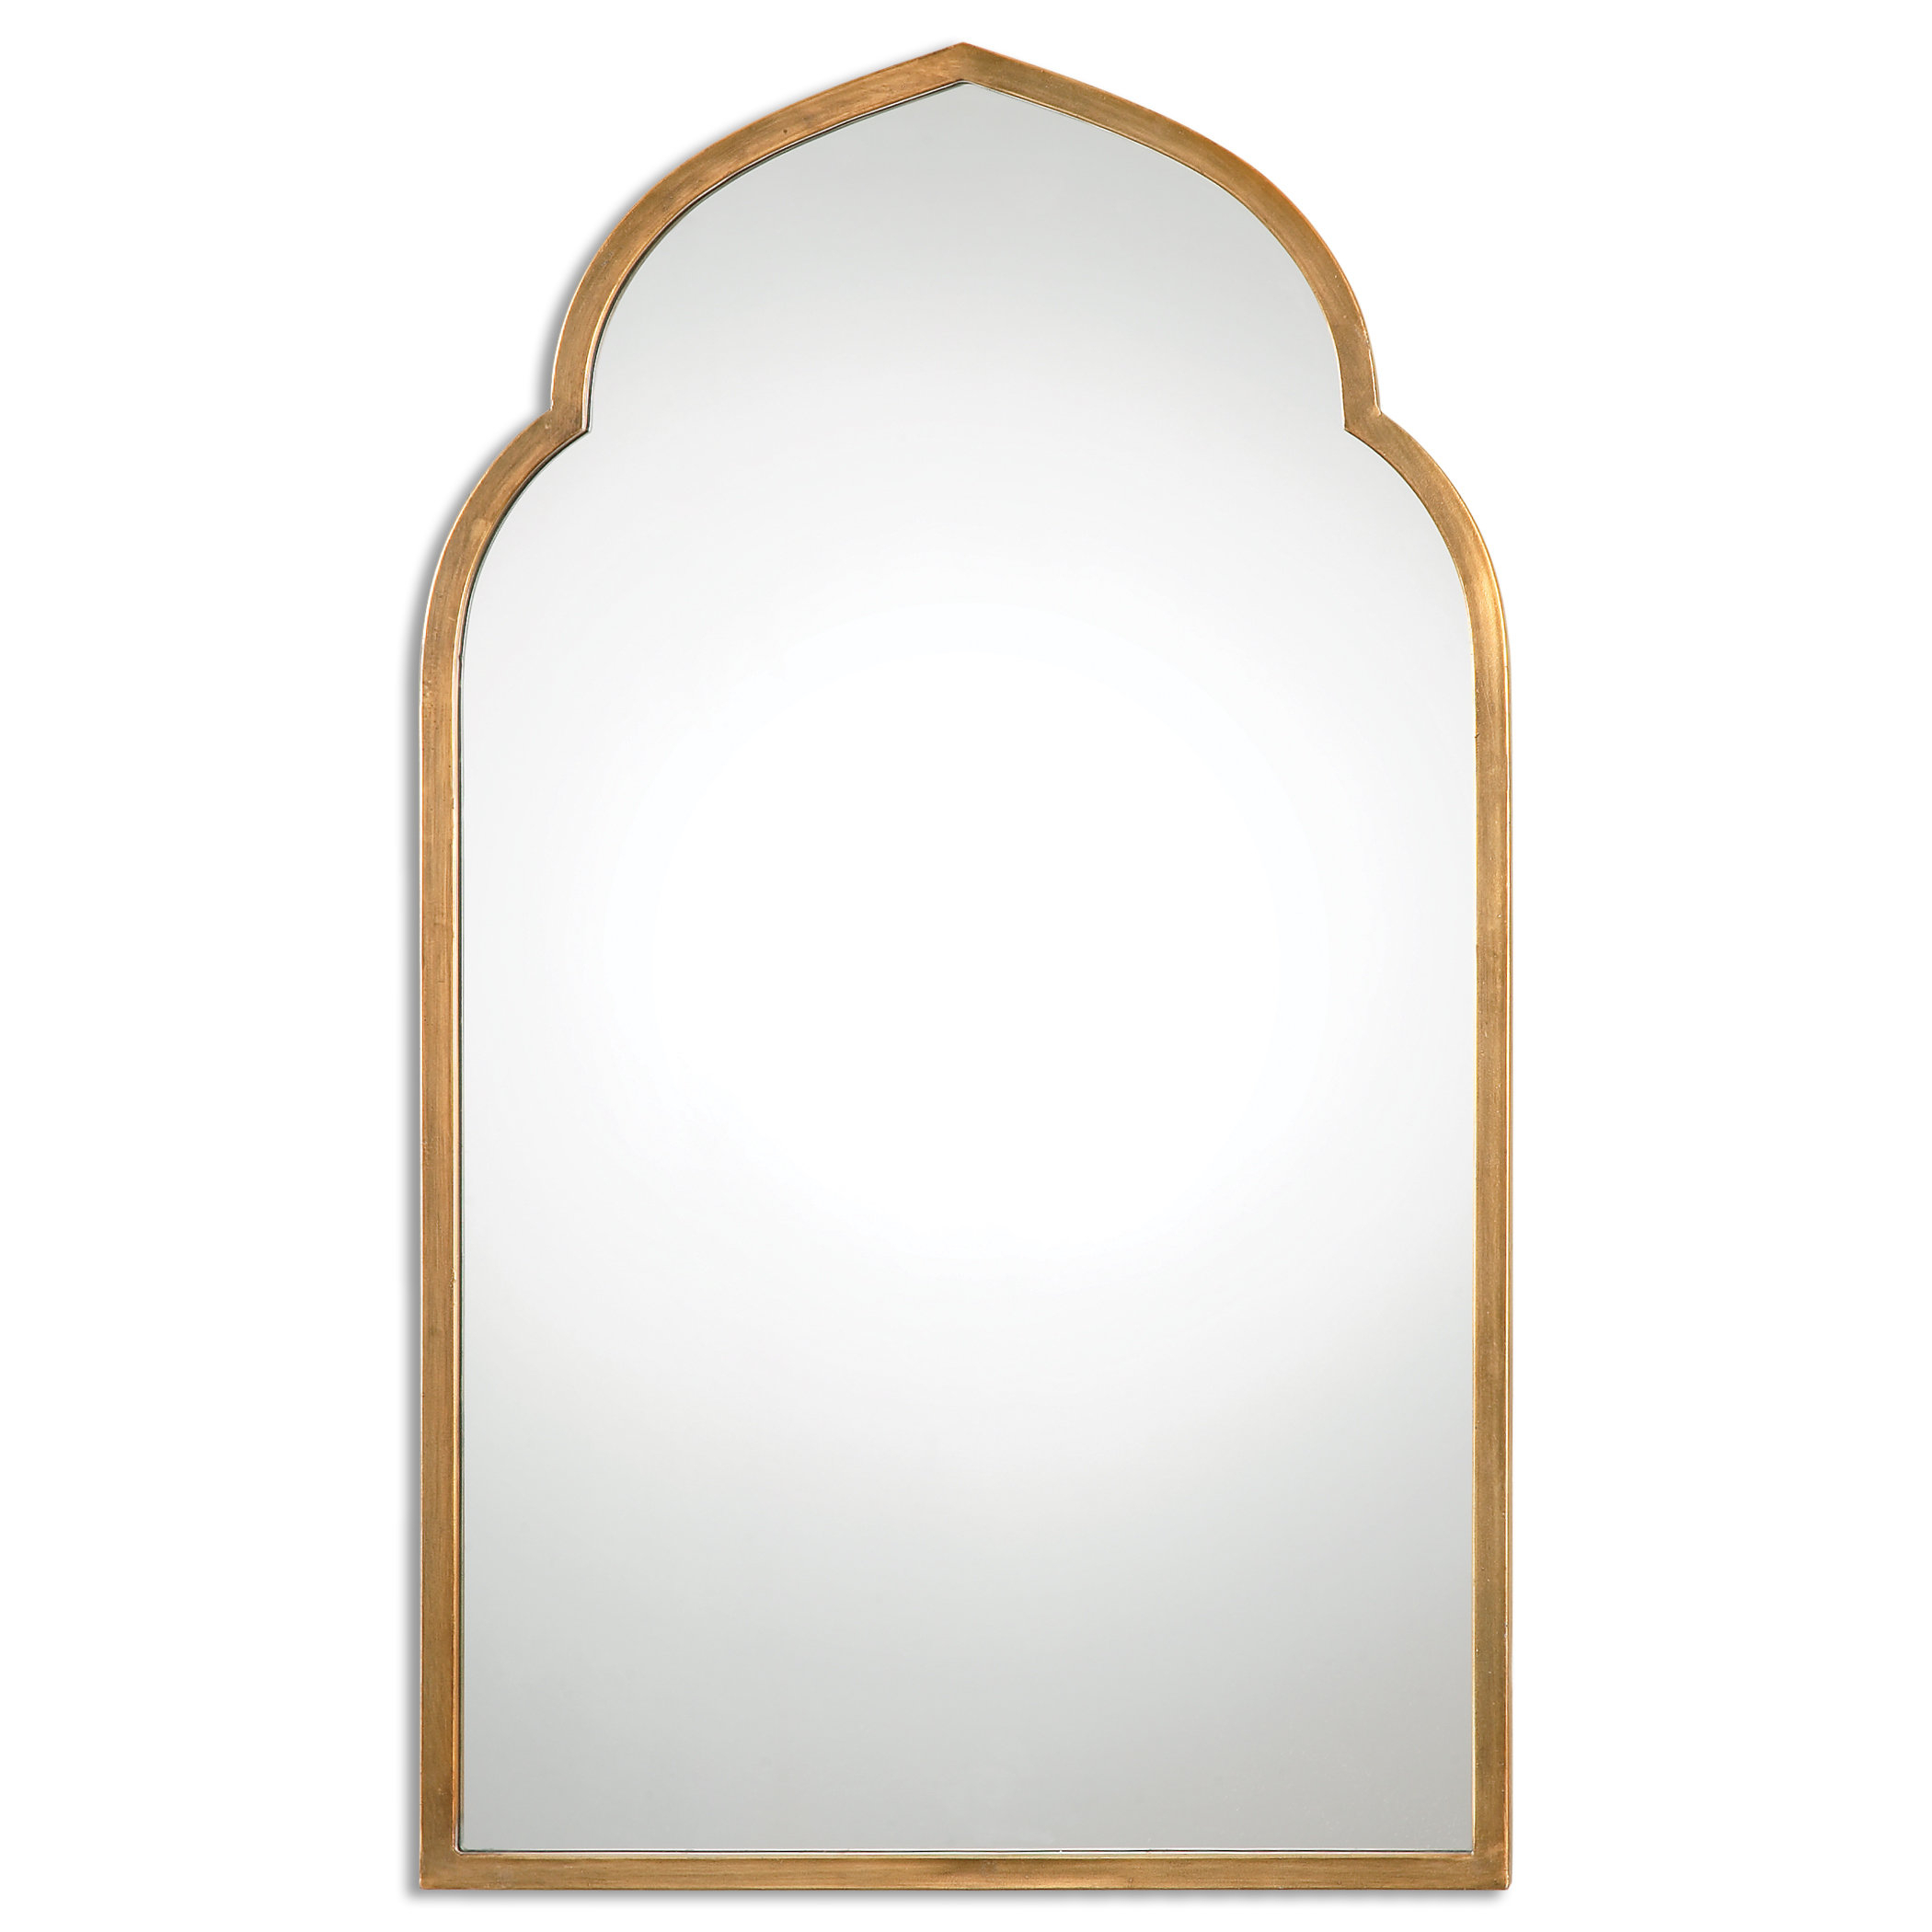 Gold Arch Wall Mirror & Reviews | Joss & Main Inside Arch Top Vertical Wall Mirrors (Image 14 of 20)